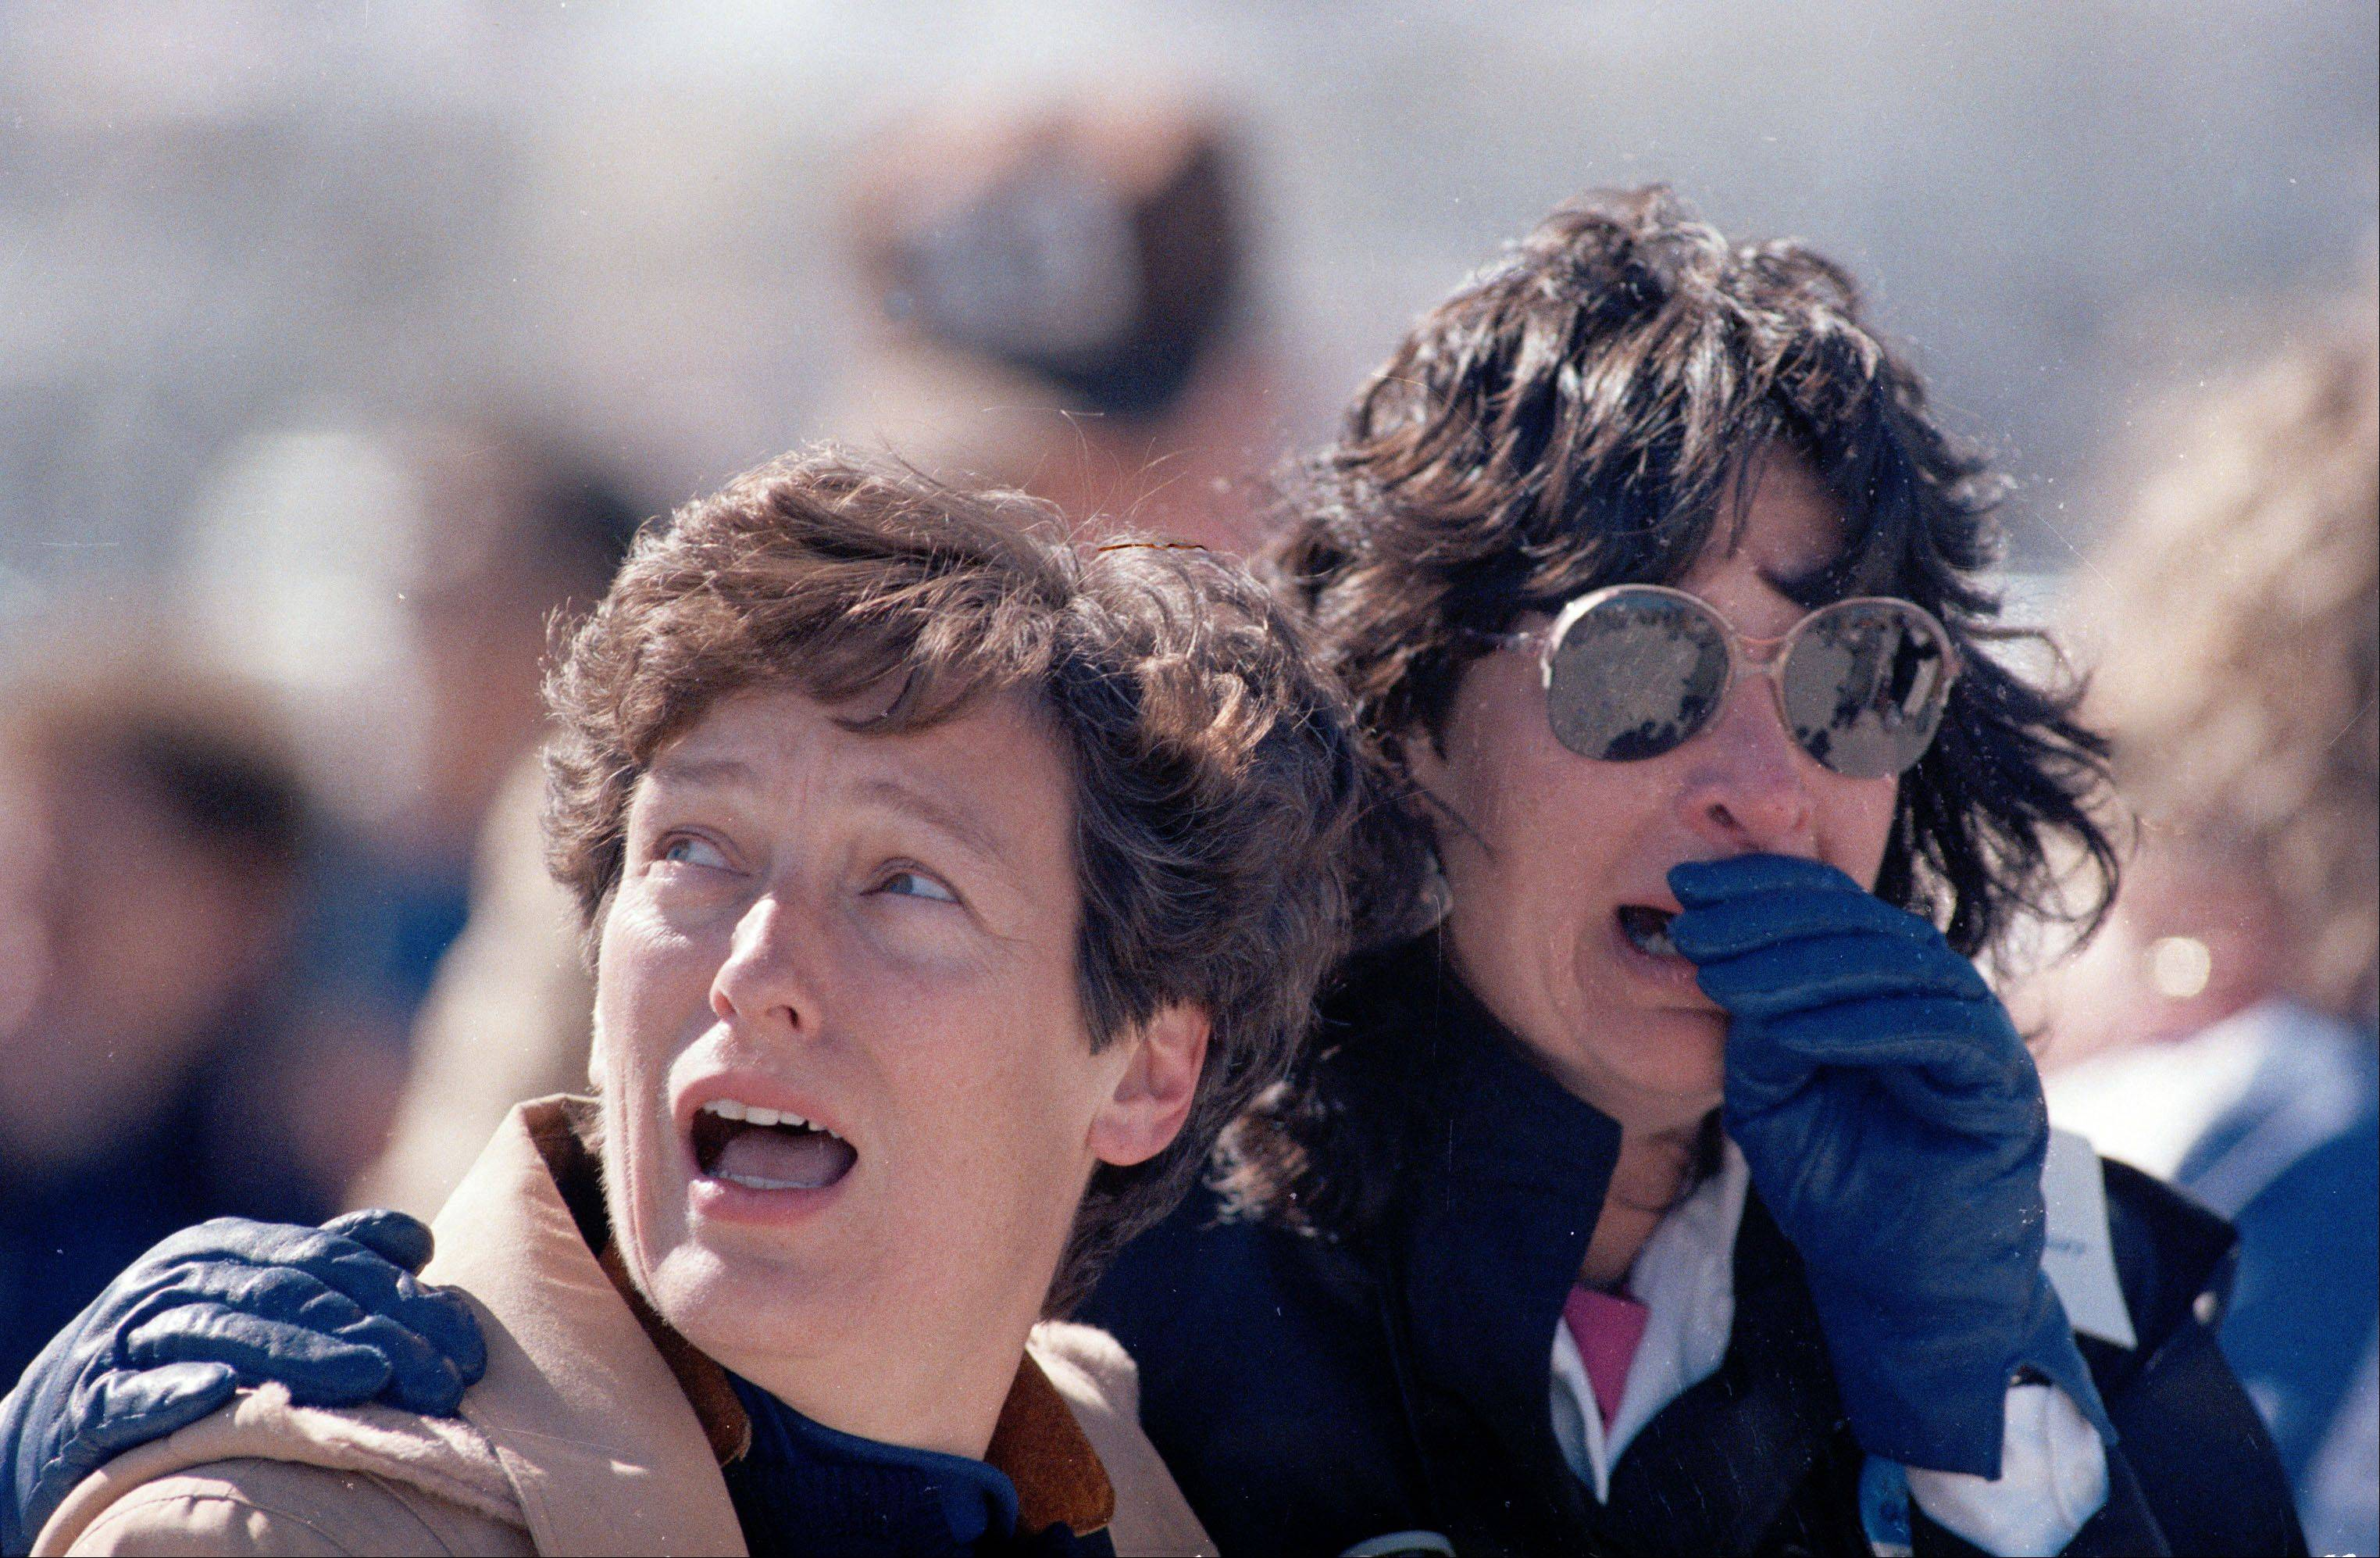 In this Jan. 28, 1986 file picture, two unidentified spectators at the Kennedy Space Center in Cape Canaveral, Fla. react after they witnessed the explosion of the space shuttle Challenger.